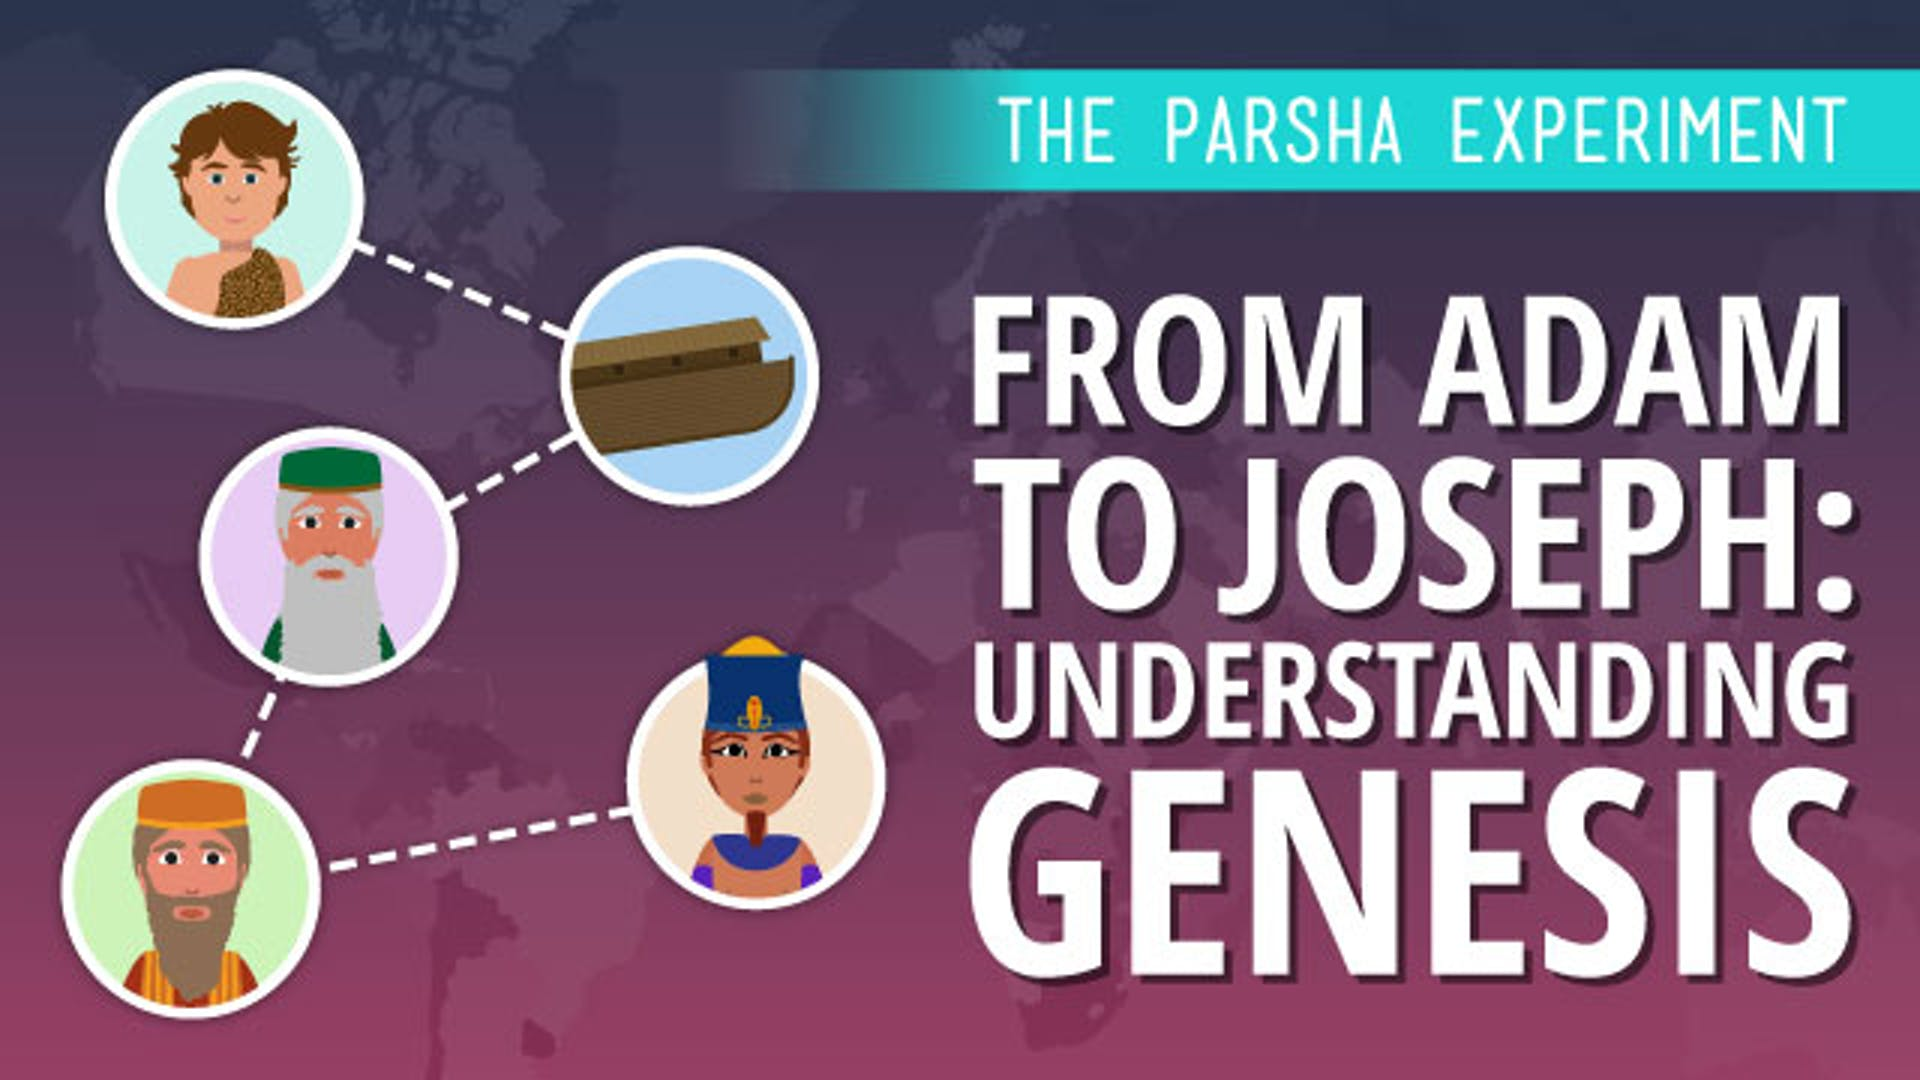 Understand Genesis hidden message